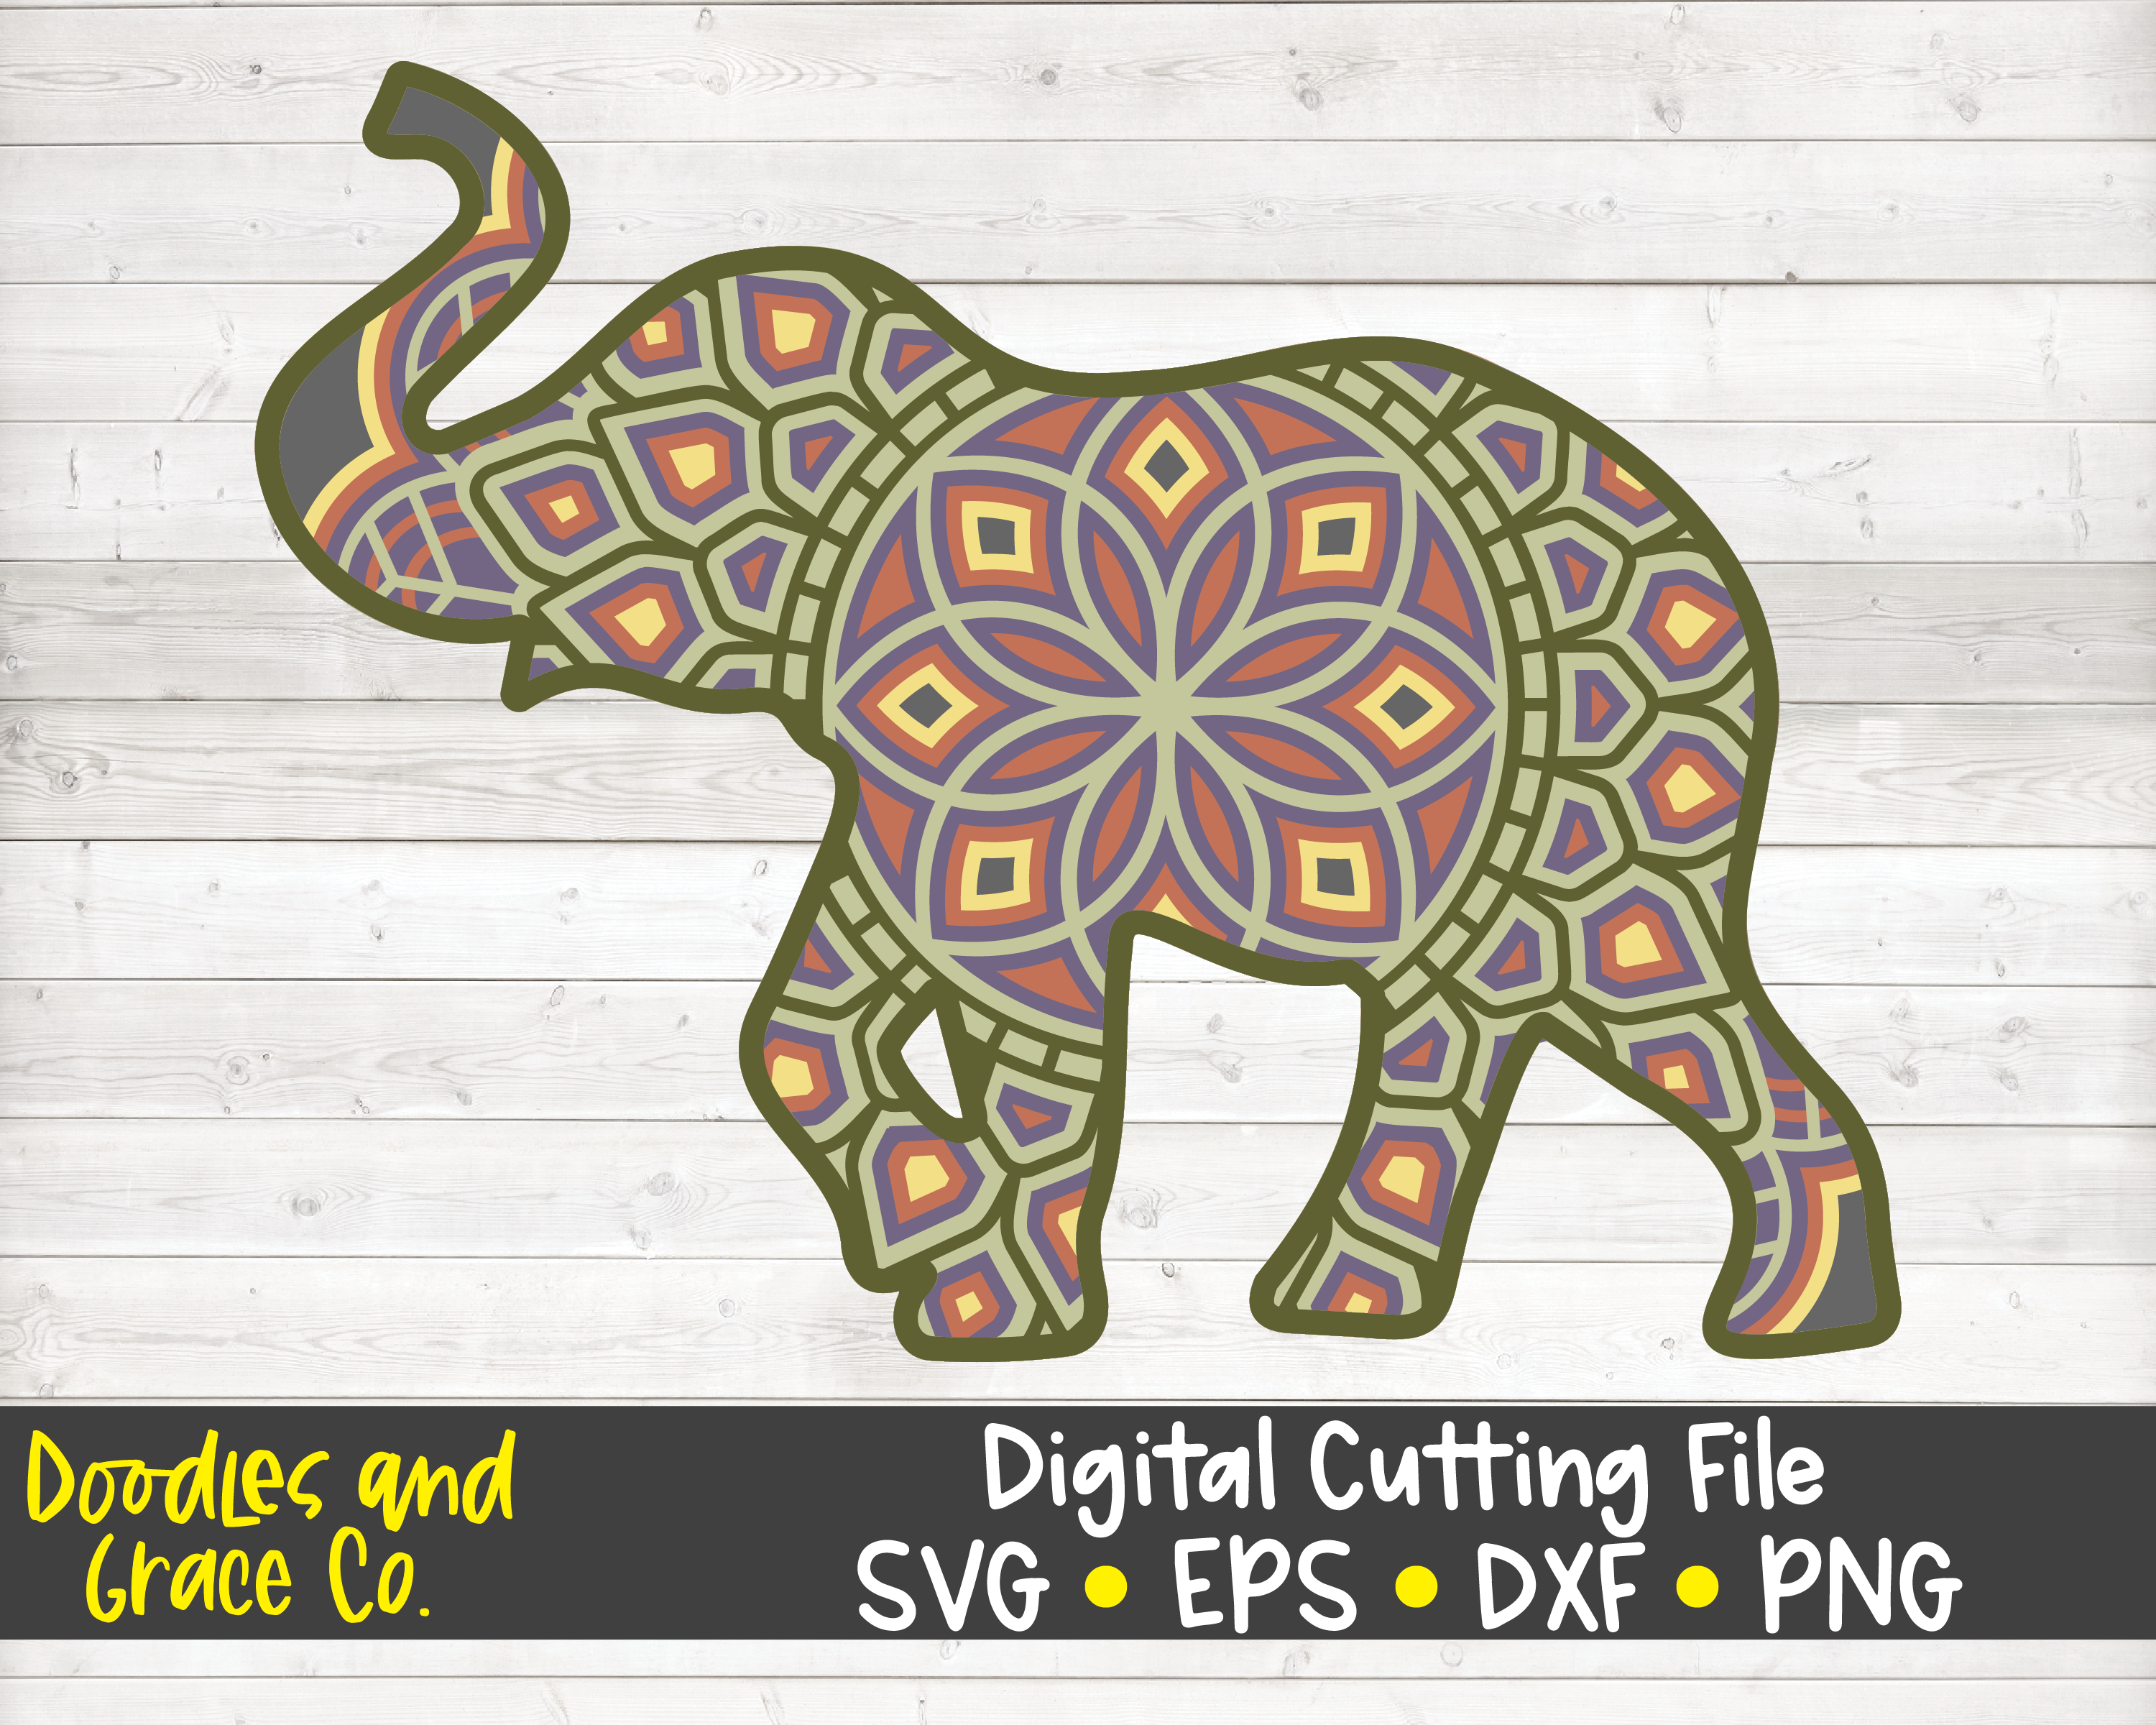 Elephant 3d Layered Mandala Svg Dxf Eps Png By Doodles And Grace Thehungryjpeg Com Also elephant mandala png available at png transparent variant. elephant 3d layered mandala svg dxf